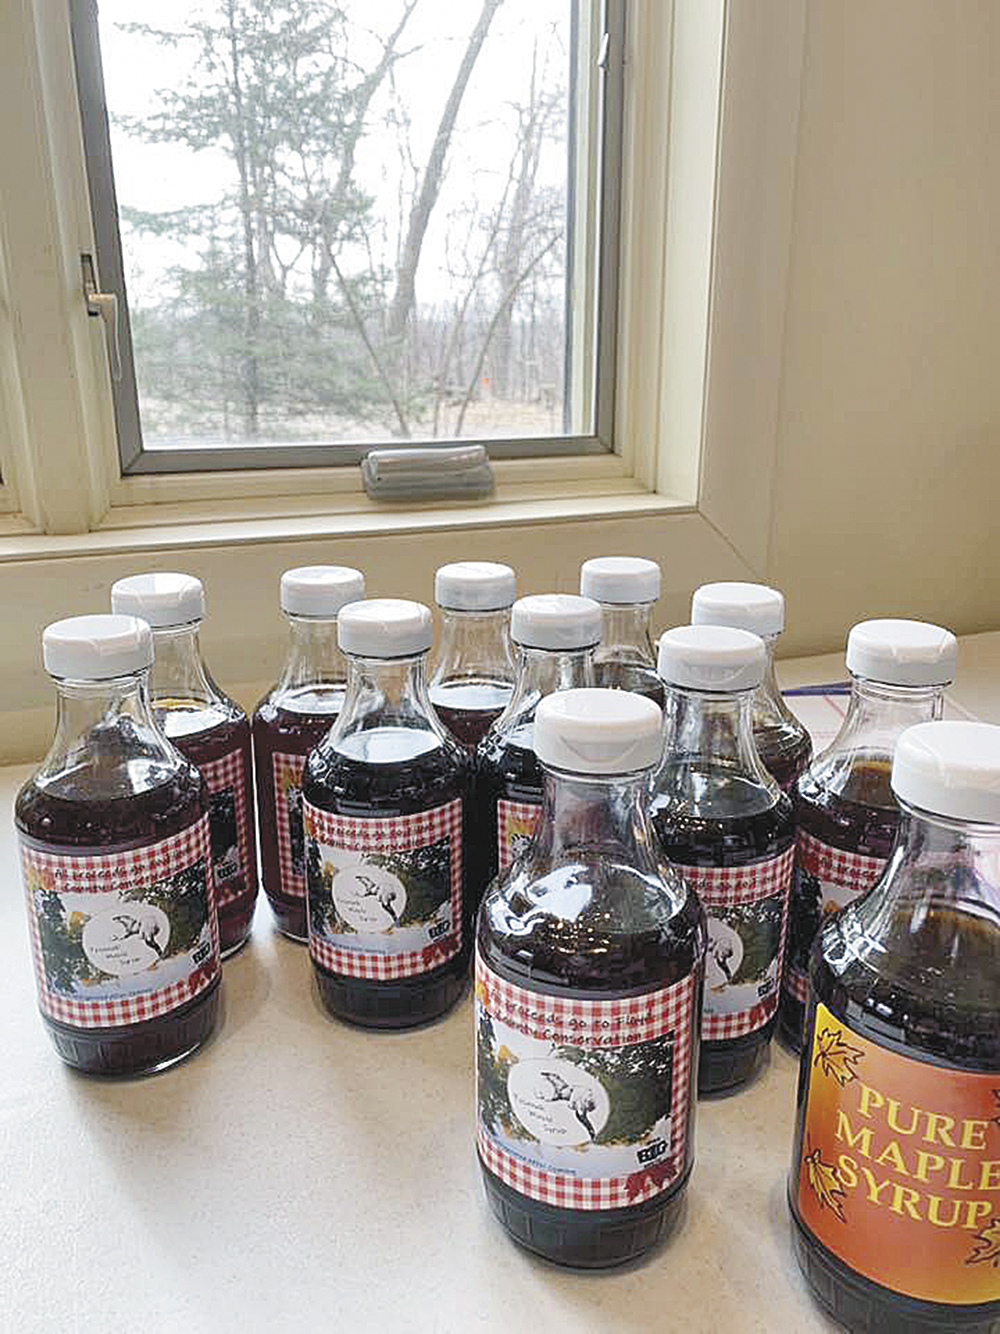 Tosanak maple syrup ready to enjoy